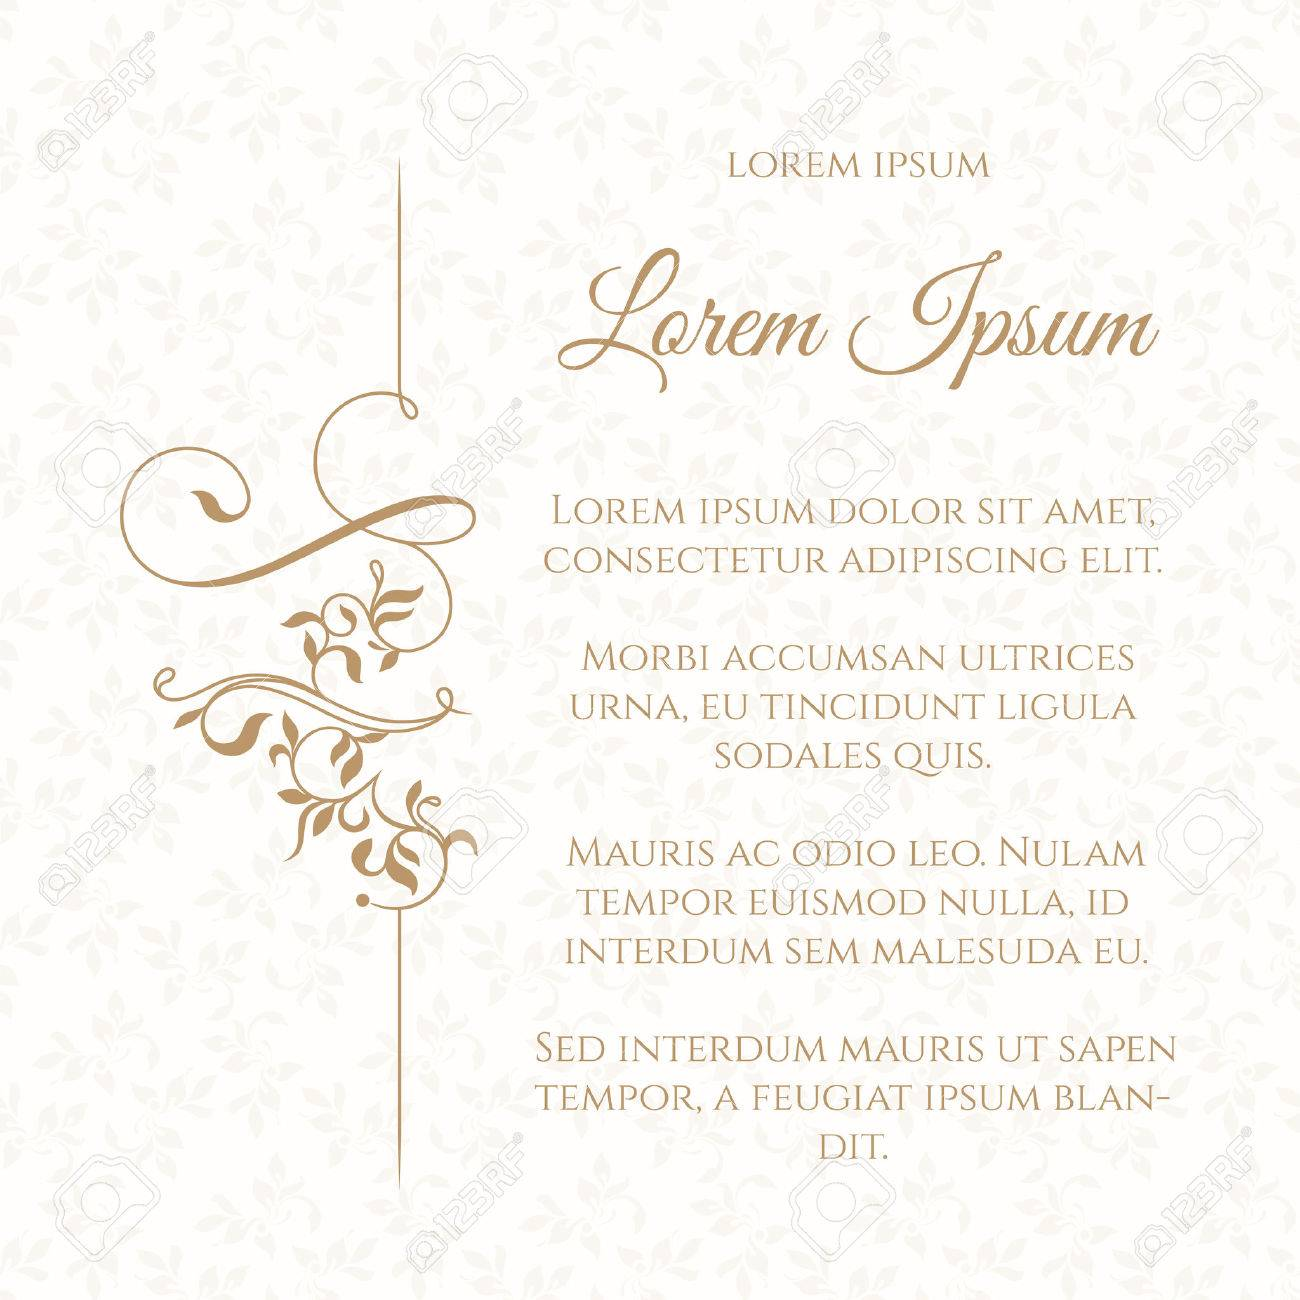 Border and seamless pattern. Template for greeting cards, invitations, menus. Graphic design page. - 50021663